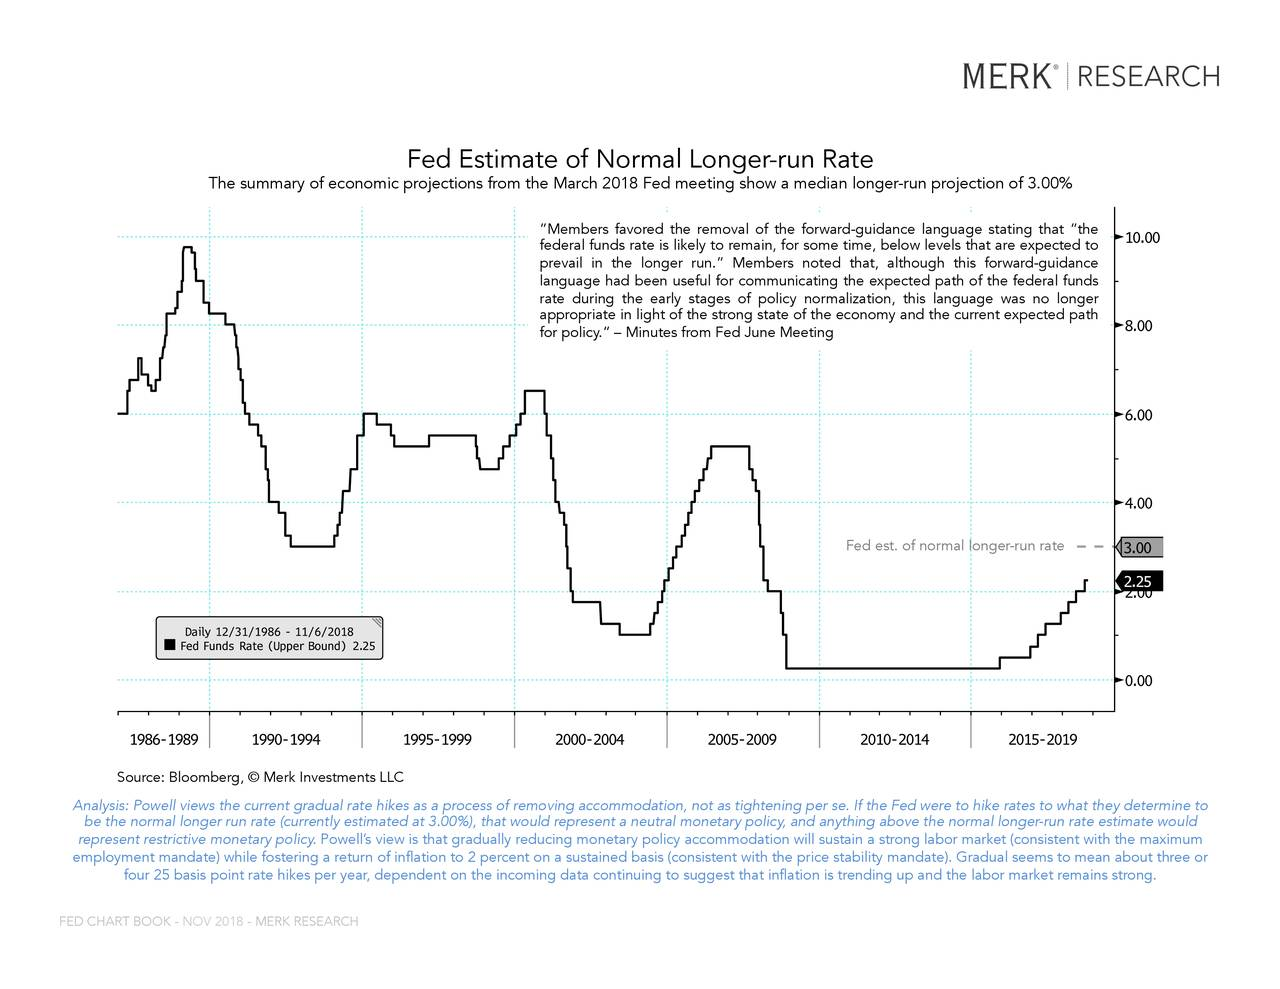 """FDTR Index (Federal Funds Target Rate - ... Fed Estimate of Normal Longer-run Rate The summary of economic projections from the March 2018 Fed meeting show a median longer-run projection of 3.00% """"Members favored the removal of the forward-guidance language stating that """"the federal funds rate is likely to remain, for some time, below levels that are expected to prevail in the longer run."""" Members noted that, although this forward-guidance language had been useful for communicating the expected path of the federal funds rate during the early stages of policy normalization, this language was no longer appropriate in light of the strong state of the economy and the current expected path for policy."""" – Minutes from Fed June Meeting Fed est. of normal longer-run rate ThSource: Bloomberg, © Merk Investments LLCin any way. The BLOOMBERG PROFESSIONAL service and BLOOMBERG Data are owned and distributed locally by Bloomberg Finance LP (""""BFLP"""") and its subsidiaries in all jurisdictions other than Argentina, Bermuda, China, India, Japan and Korea (the (""""BFLP do not provide investment advice, and nothing herein shall constitute an offer of financial instruments by BFLP, BLP or their affiliates.upport and service for the Services and distributes the Services either directly or through a non-BFLP subsidiary in the BLP Countries. BFLP, BLP and their affiliates Analysis: Powell views the current gradual rate hikes as a process of removing accommodation, not as tightening per se. If the Fed were to hike rates to what they determine to be tBloomberg ®ong11/06/2018 11:15:11tly estimated at 3.00%), that would represent a neutral monetary policy, and anything above the normal longer-run rate estimate would 1 represent restrictive monetary policy. Powell's view is that gradually reducing monetary policy accommodation will sustain a strong labor market (consistent with the maximum employment mandate) while fostering a return of inflation to 2 percent on a sustained basis (consistent with"""